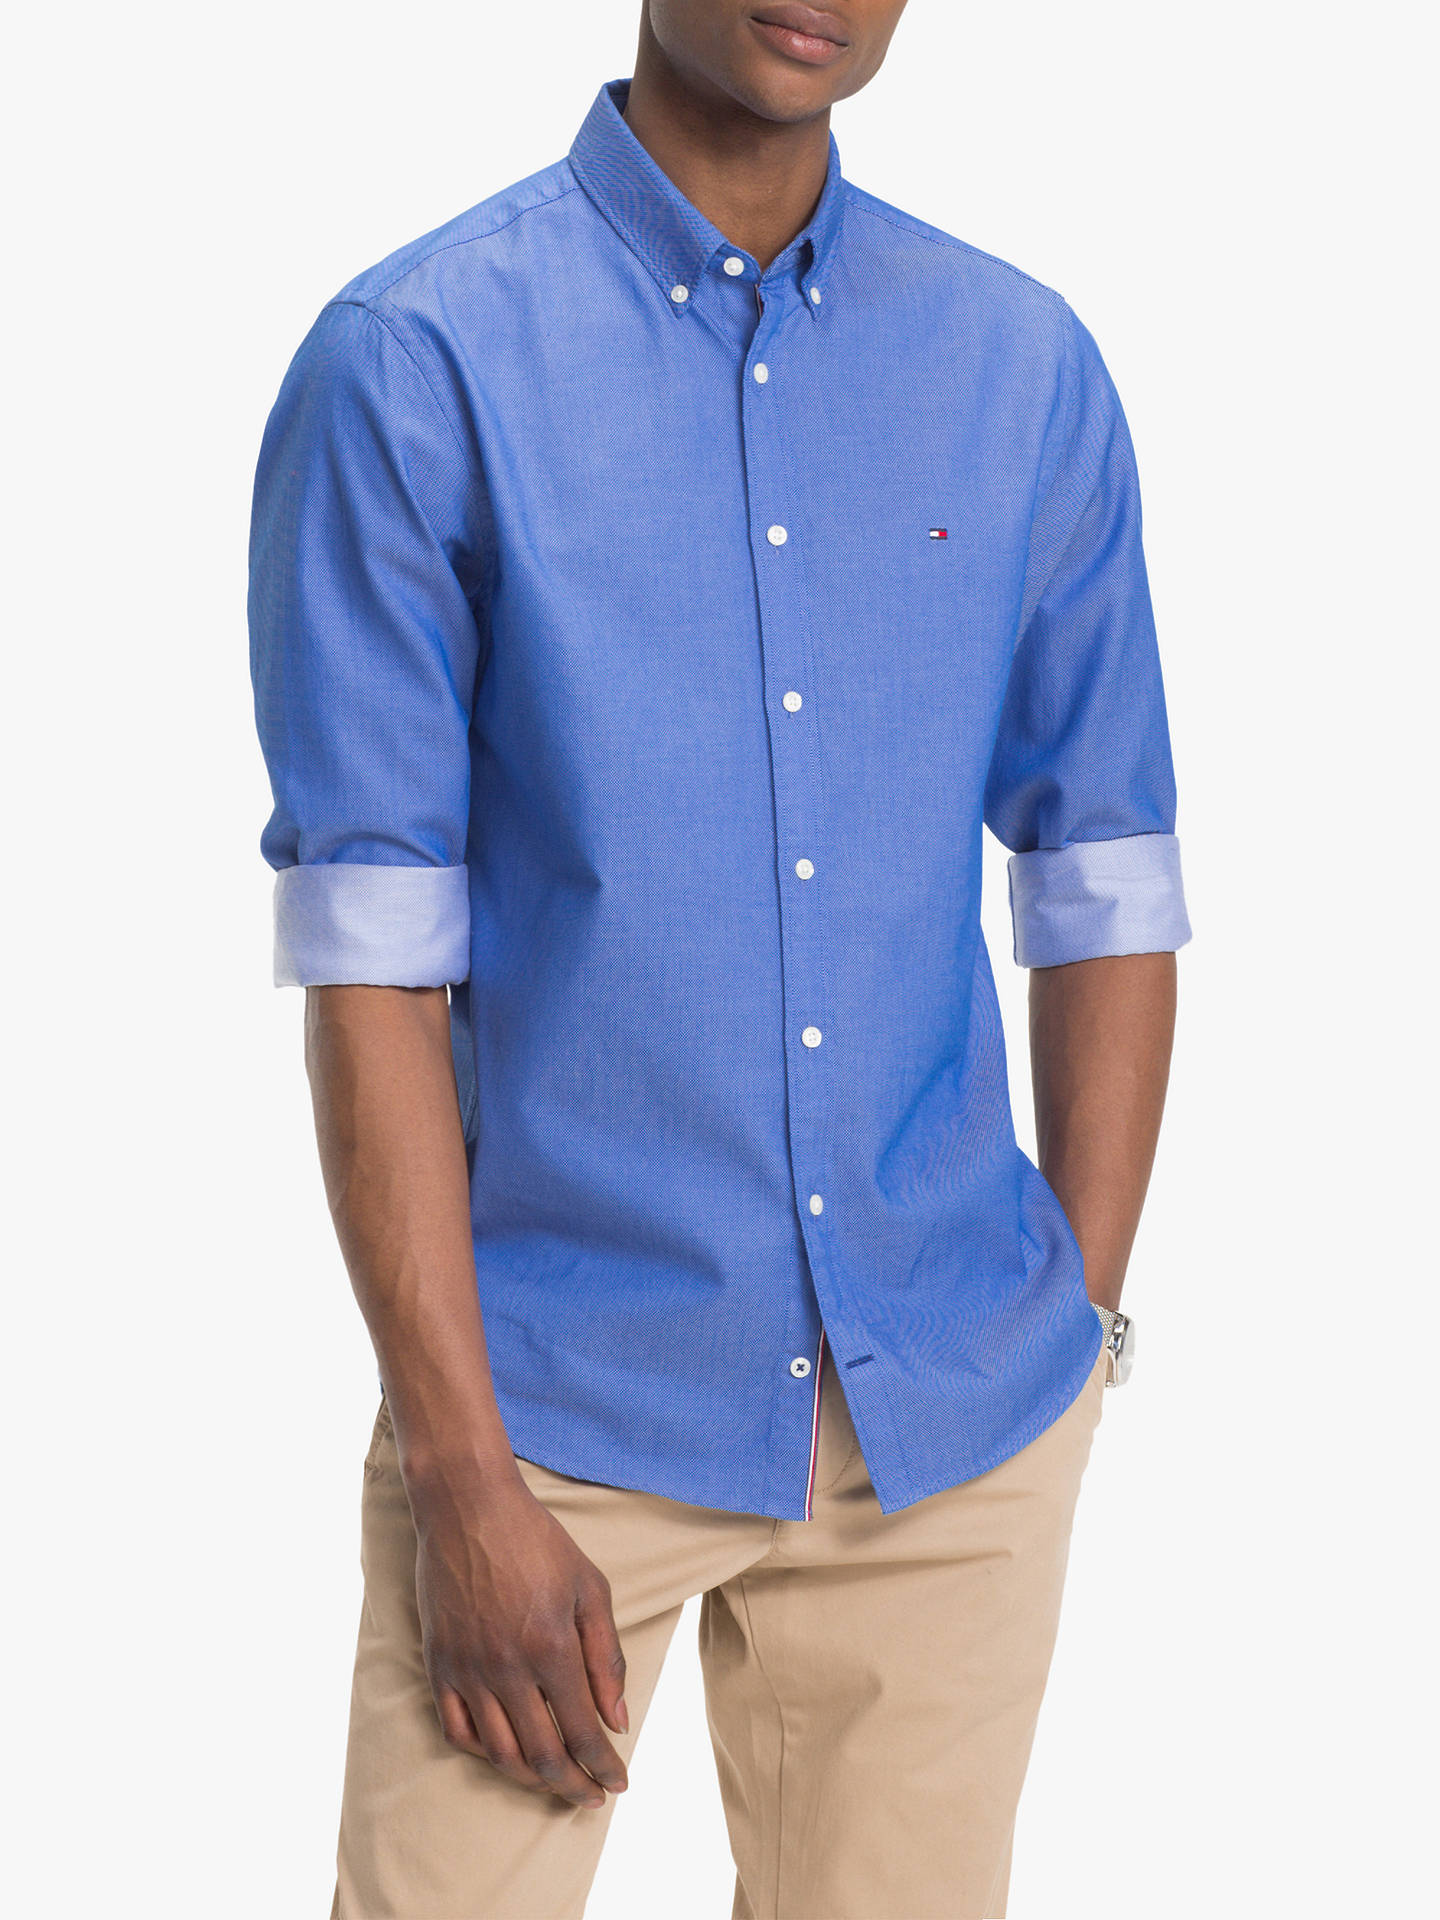 481000c4 Buy Tommy Hilfiger Two Tone Dobby Shirt, Blue Lolite, XL Online at  johnlewis.